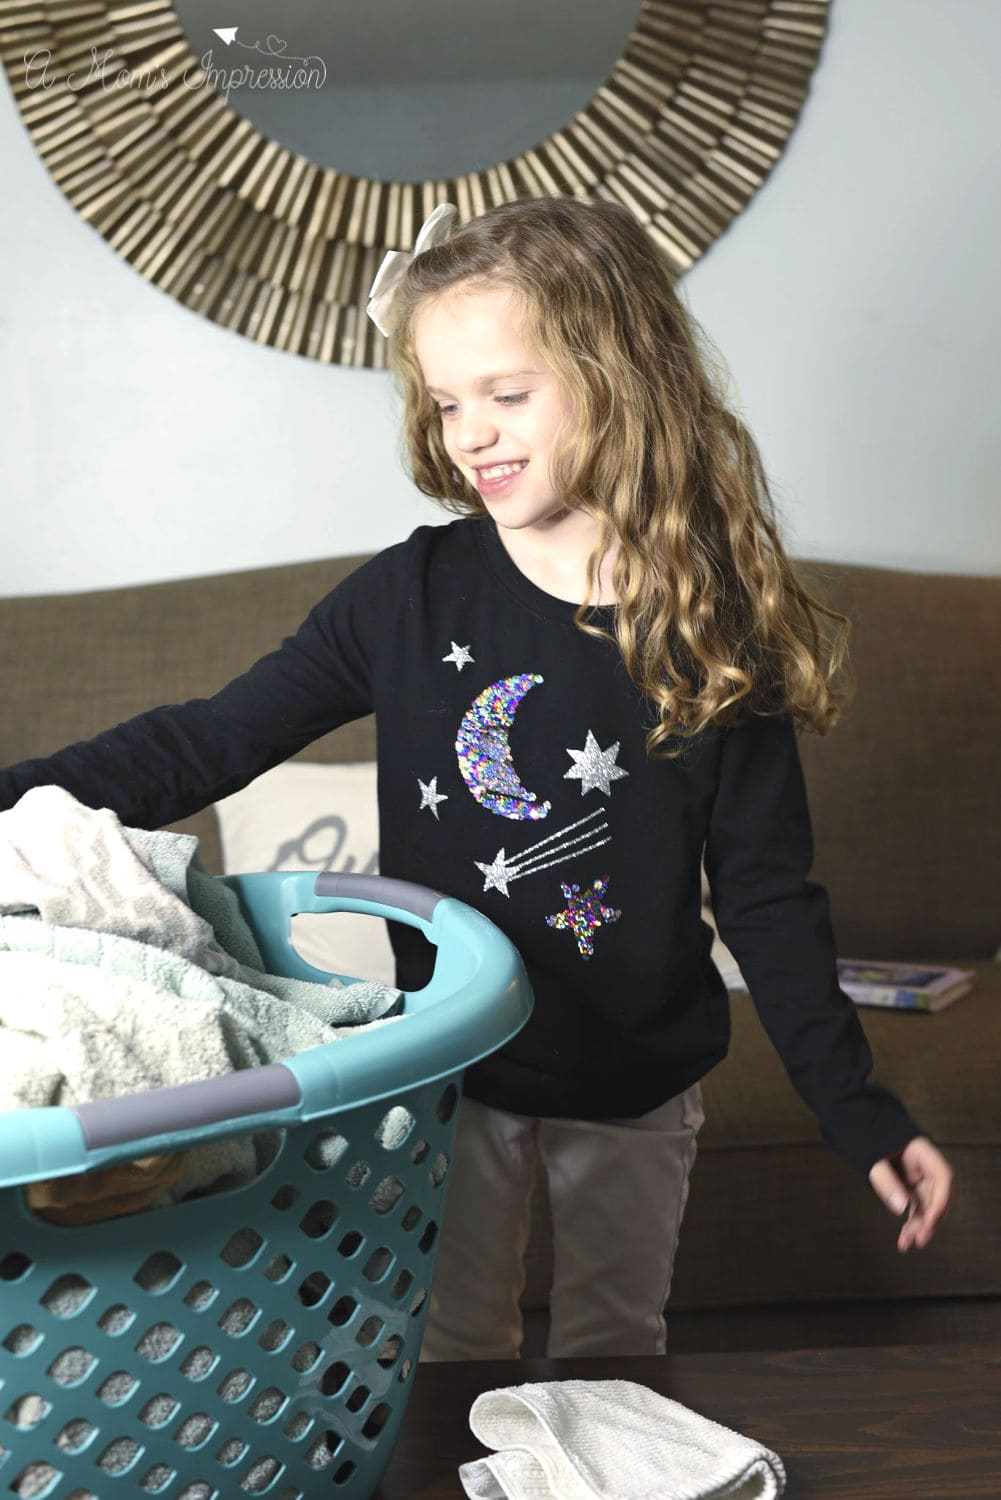 A child Folding Clothes out of a laundry basket